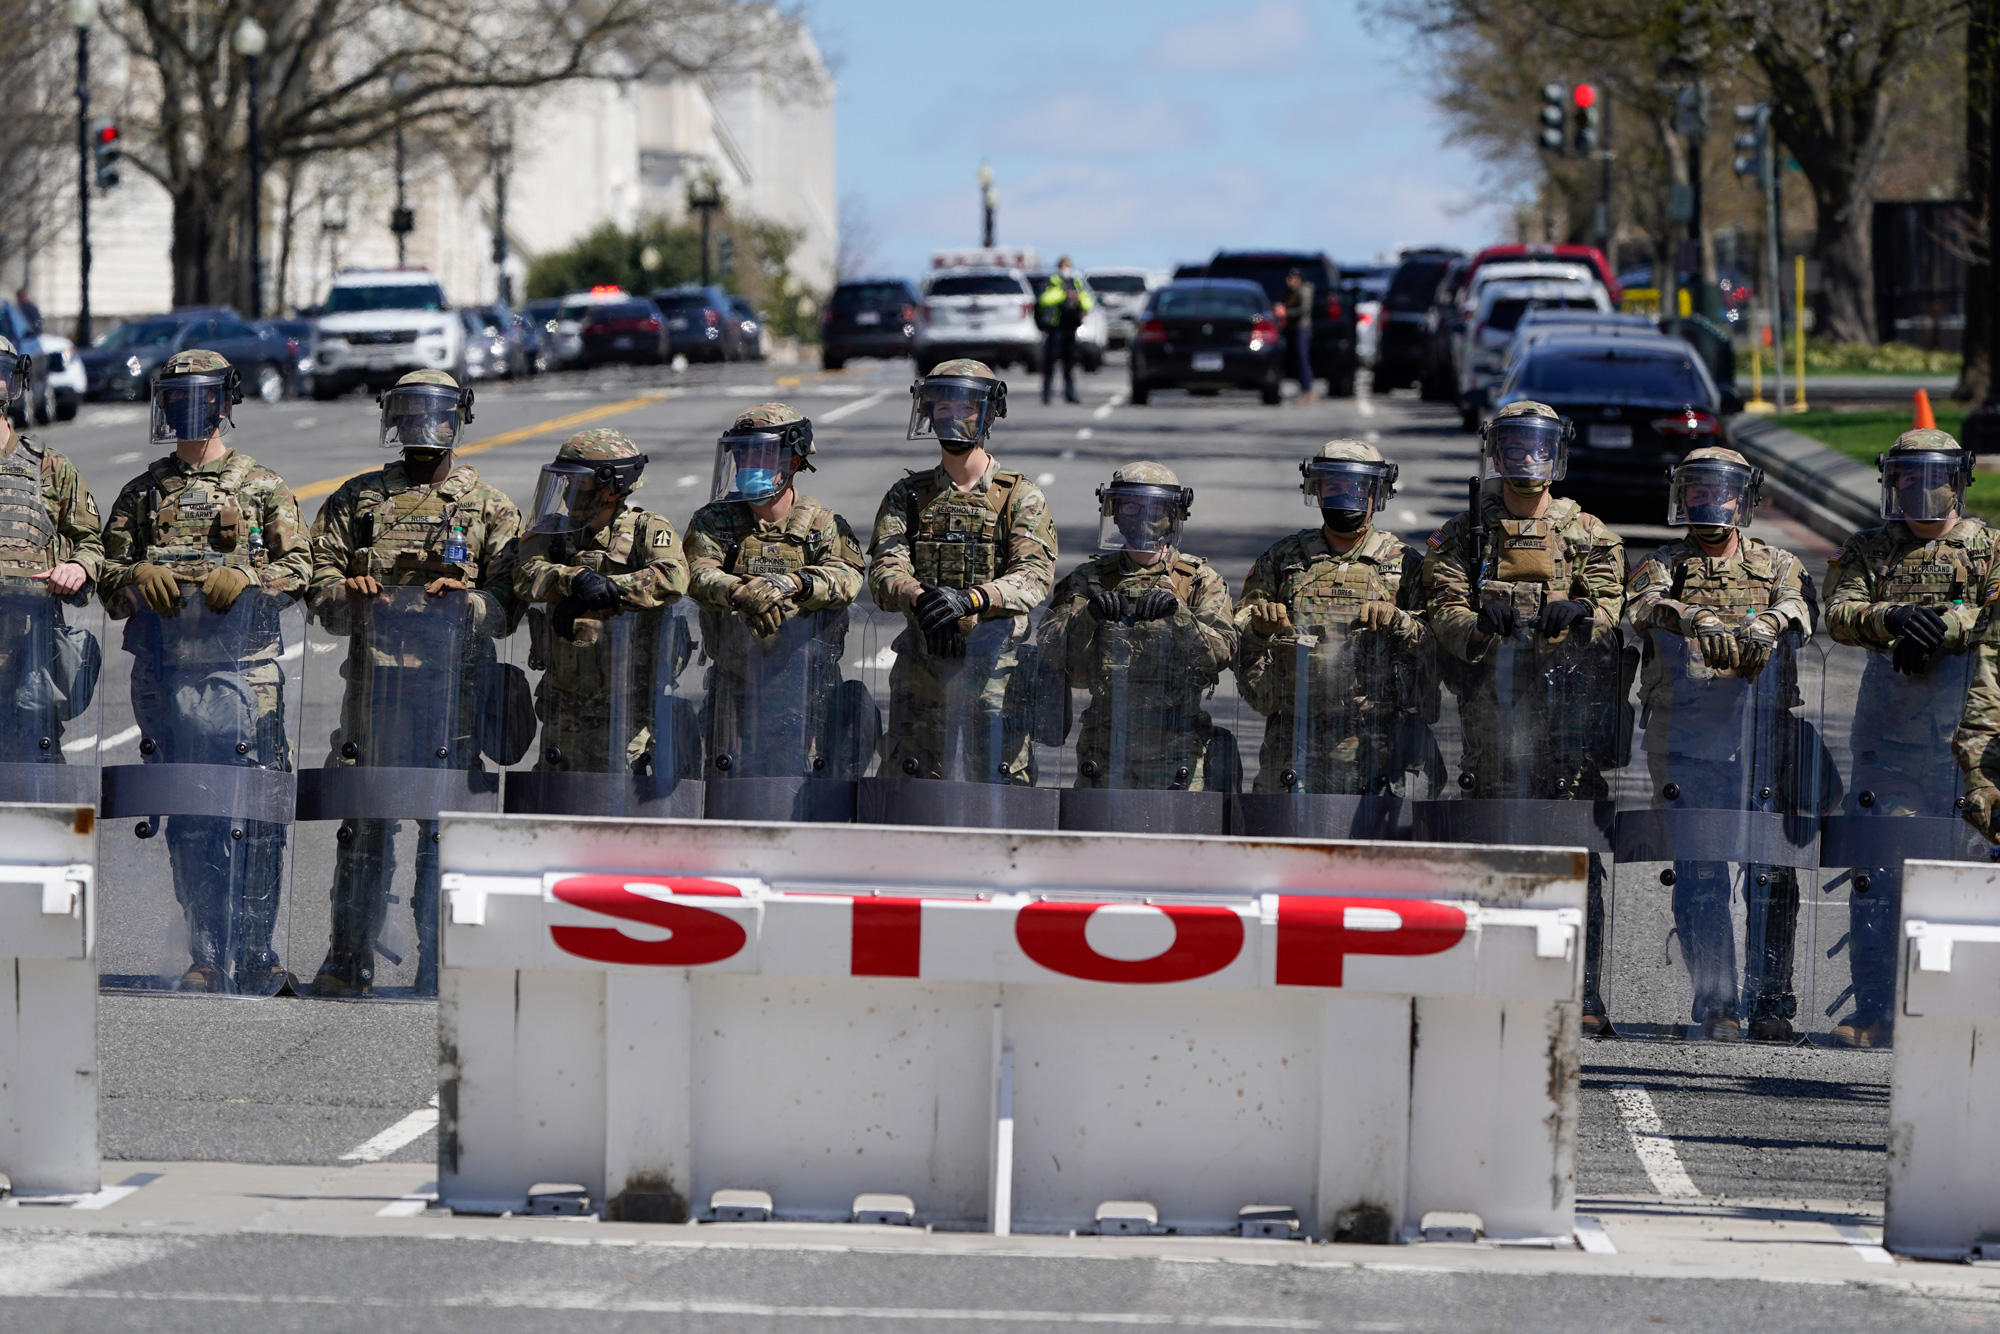 Troops stand guard near the scene of a car that crashed into a barrier on Capitol Hill in Washington, DC, on April 2.